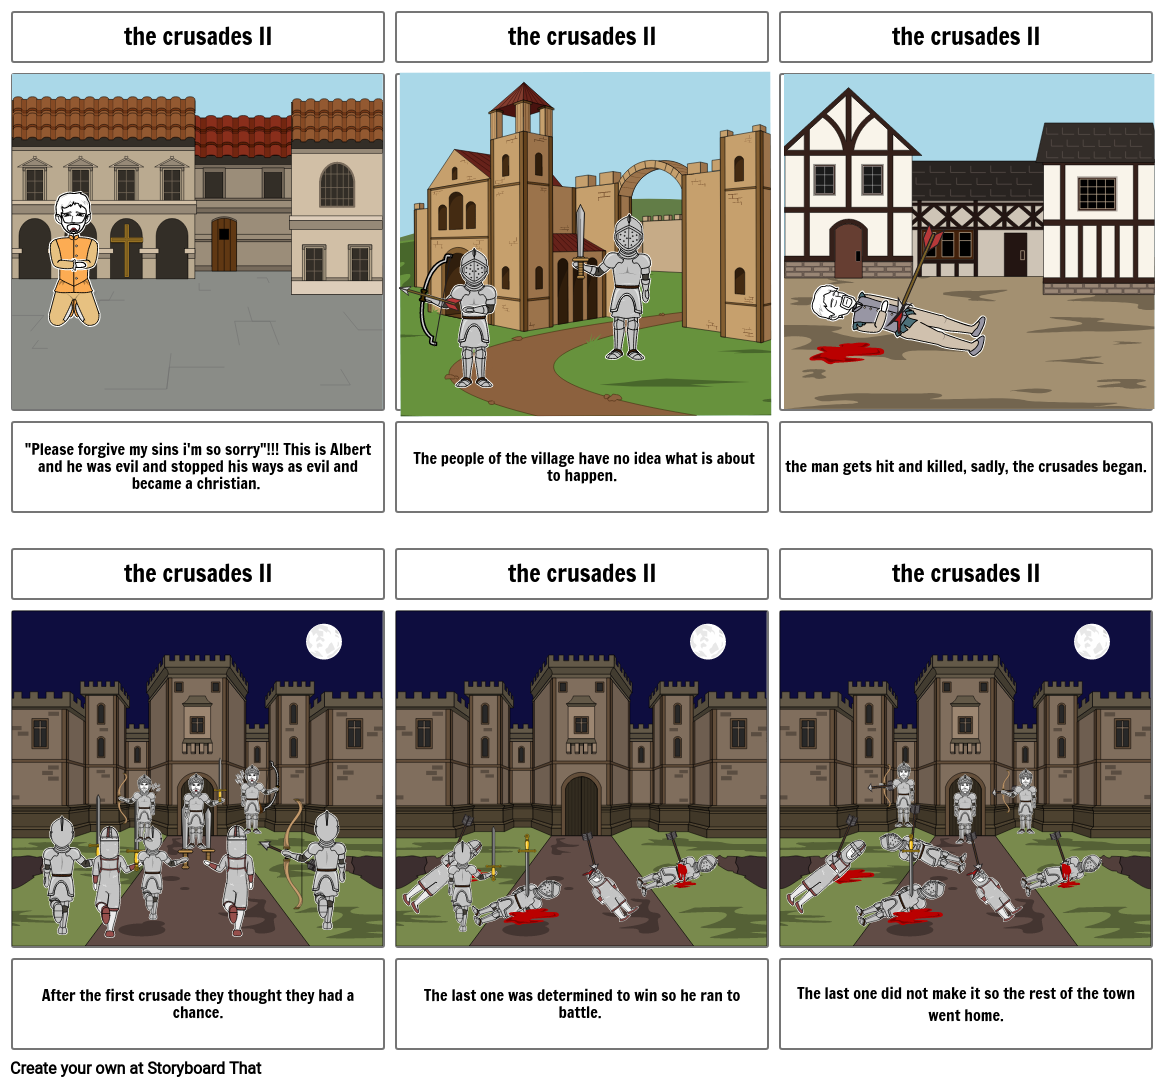 the crusades II by Ethan Dudla and Charles Evosevich